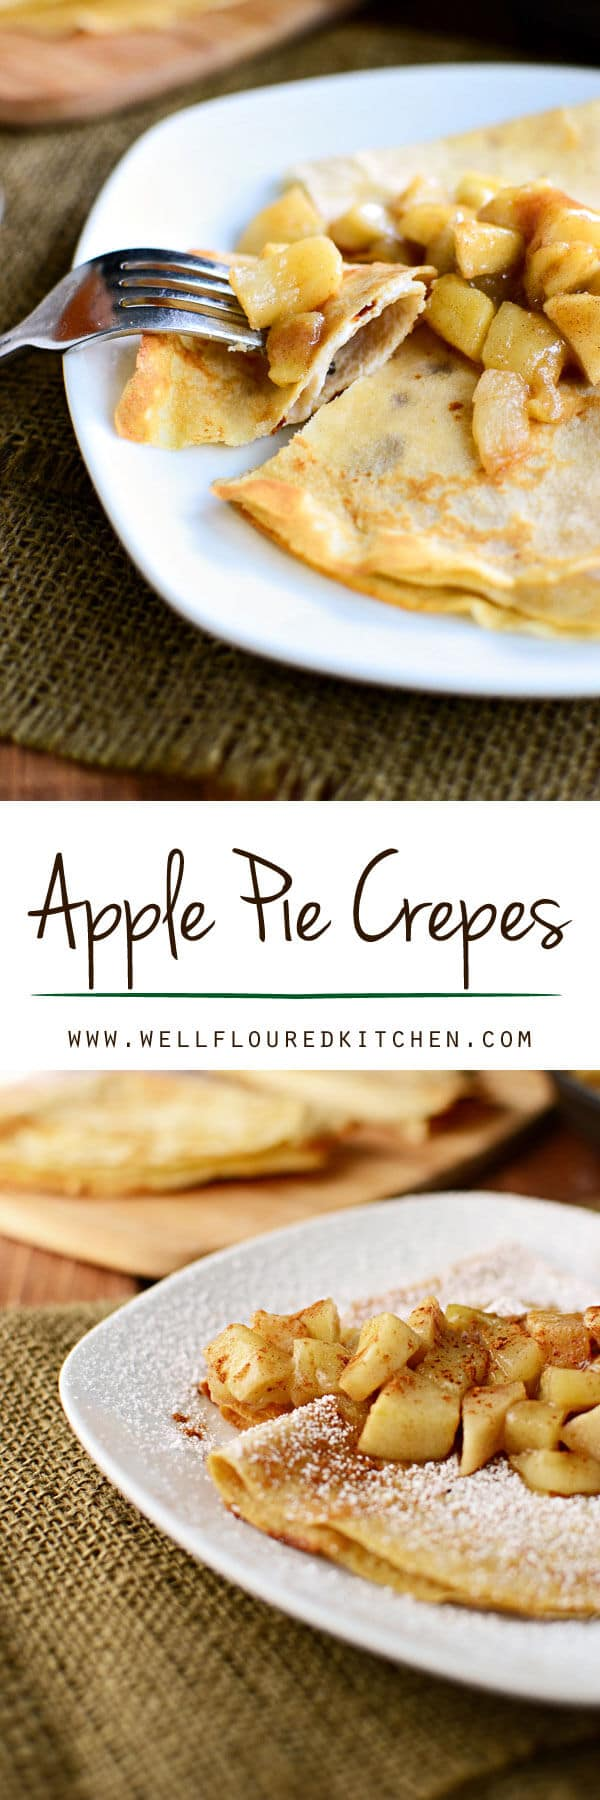 Whole wheat apple pie crepes stuffed with vanilla yogurt and topped with apple pie filling. A delicious, simple breakfast idea. Apple Pie Crepes {with White Whole Wheat Flour & Stuffed with Yogurt}